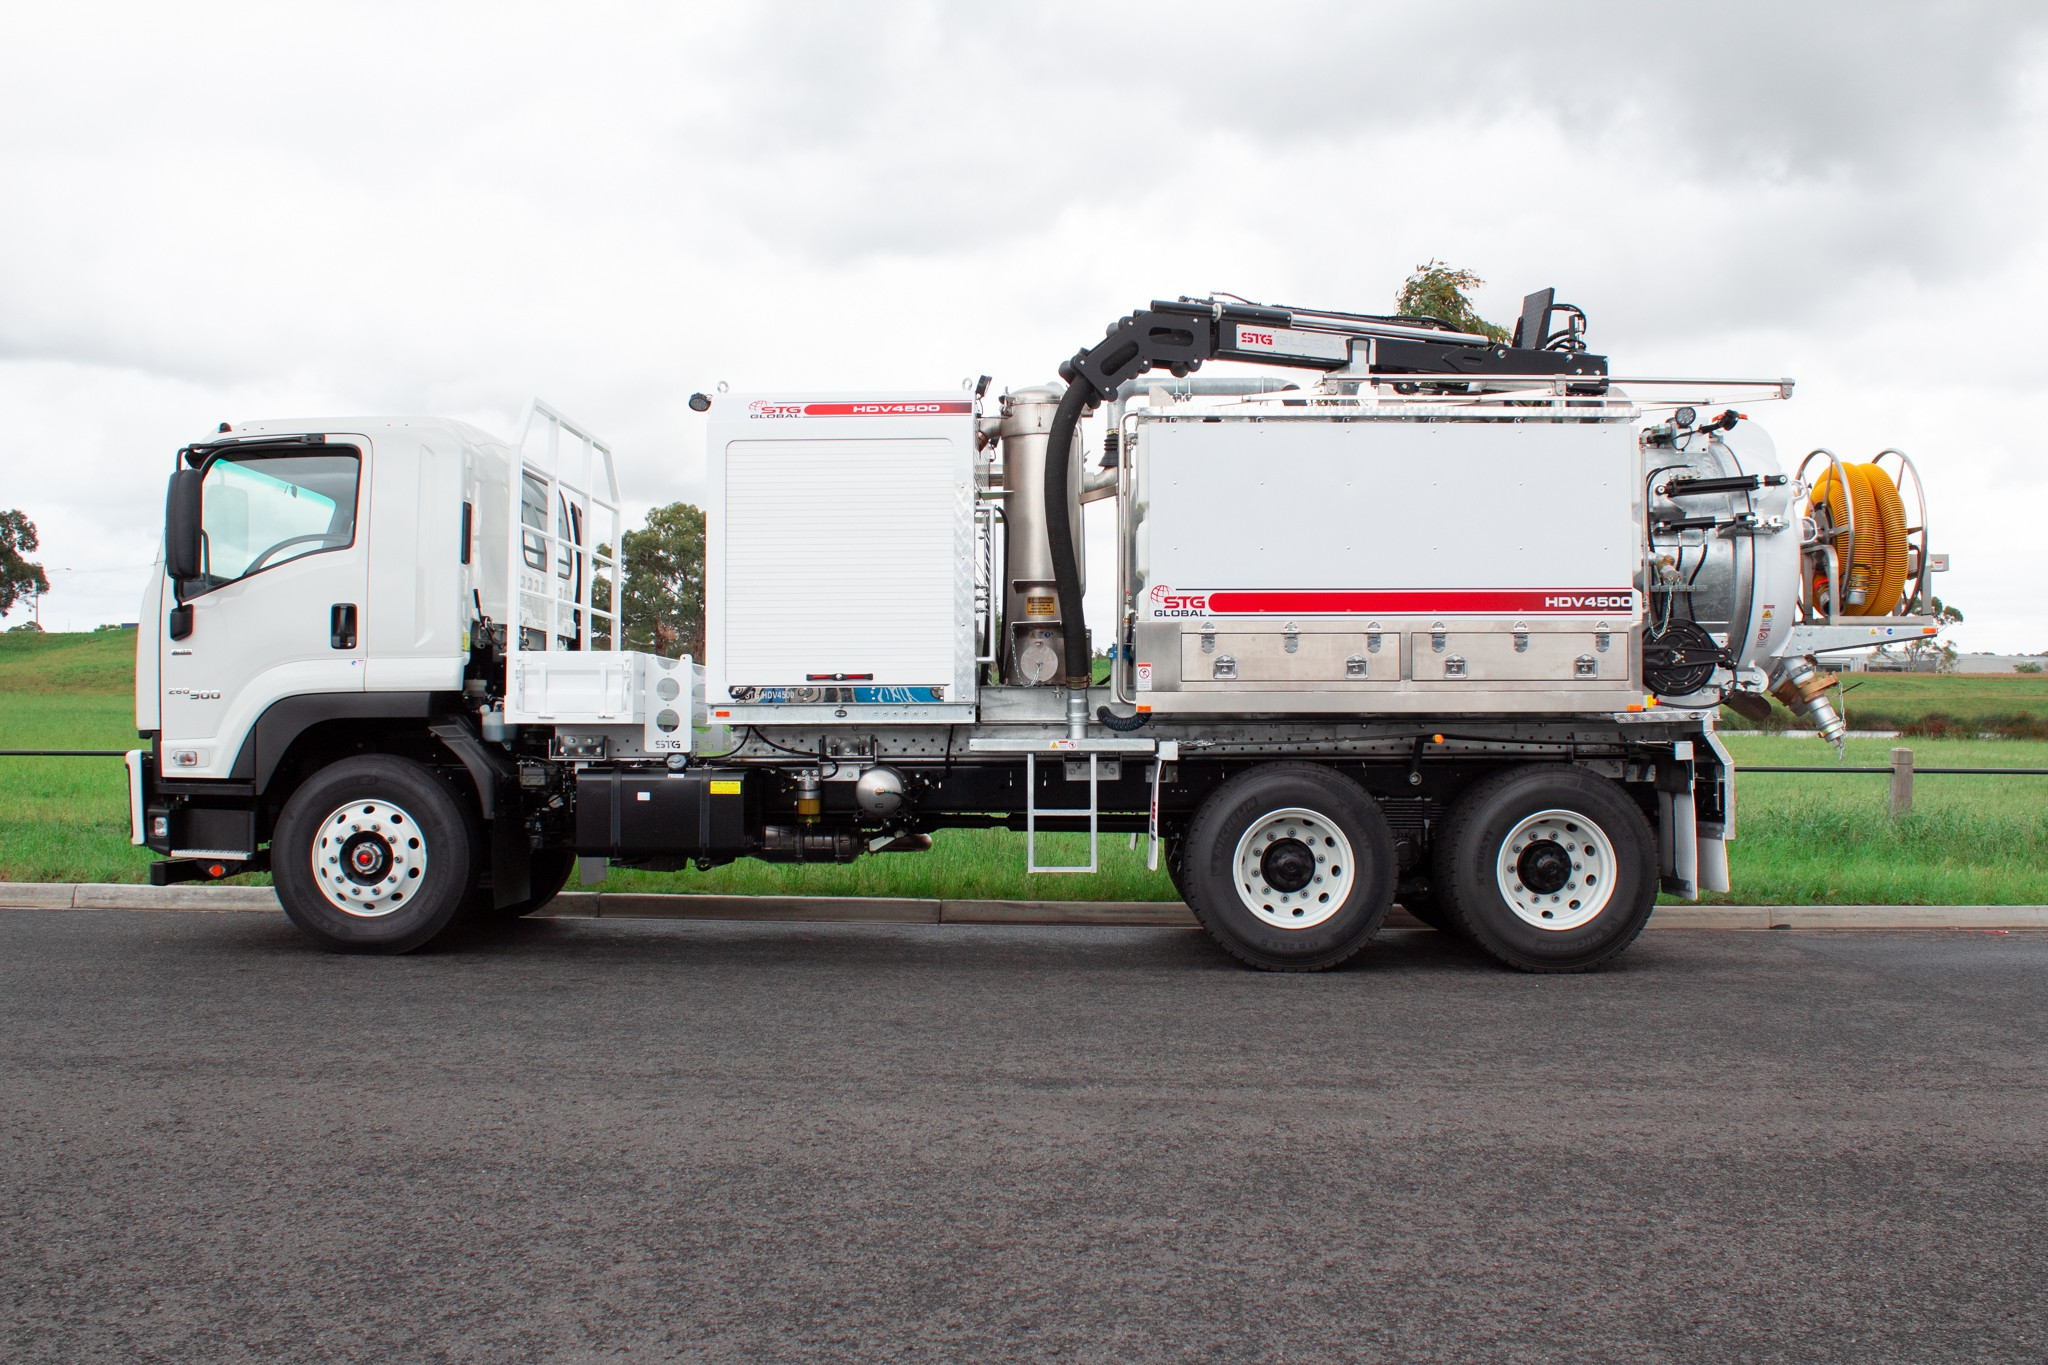 STG Global 2019 Isuzu FVZ260-300 Auto 6x4 4,500Lt Vac Truck for sale